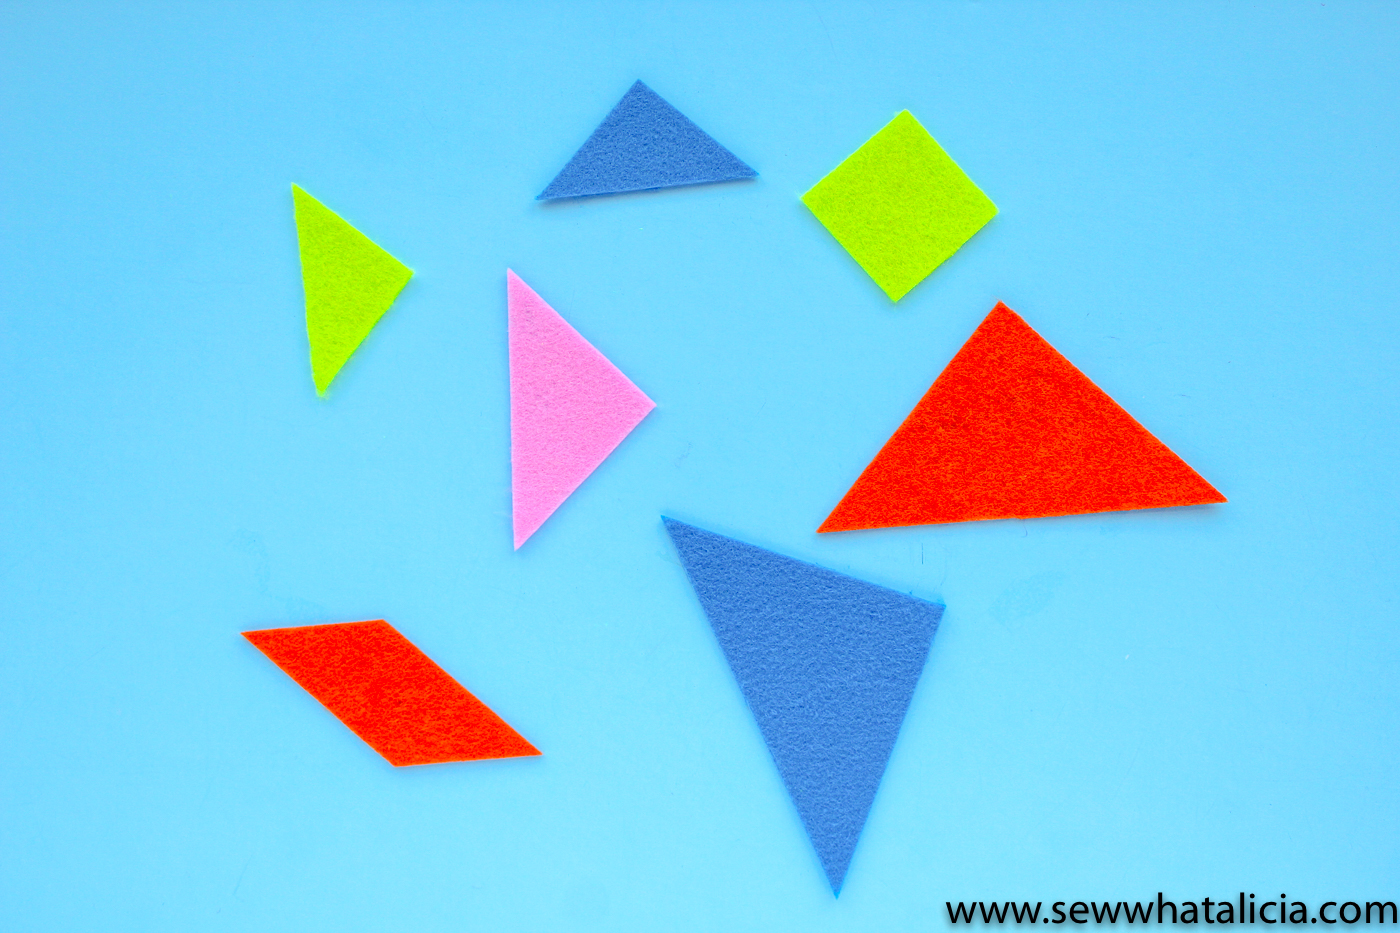 graphic about Printable Tangrams referred to as Cuttable and Printable Tangrams PDF - Sew What, Alicia?